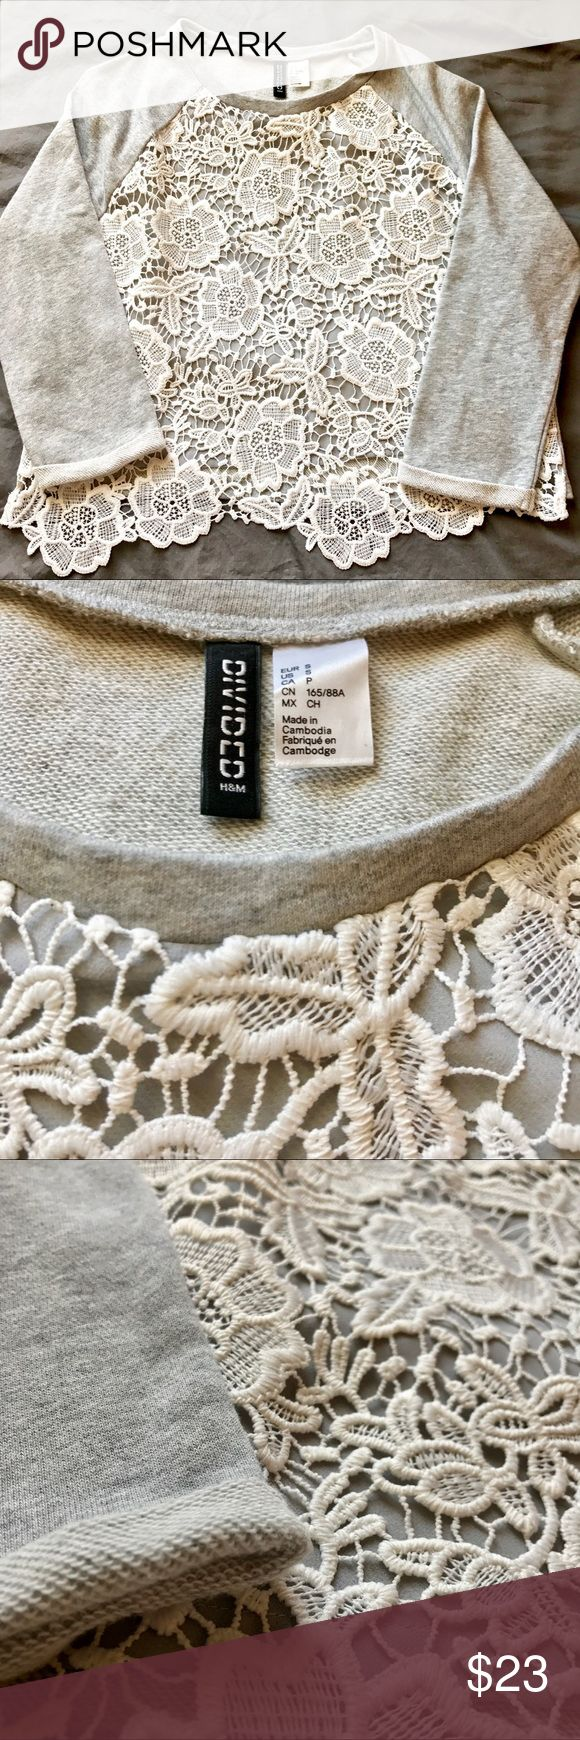 H&M DIVIDED Crochet Lace Top Very good condition! Just one teeny tiny stain on a flower that can most likely be removed (see pic). Size small. Measurements in photos. Divided Tops Blouses